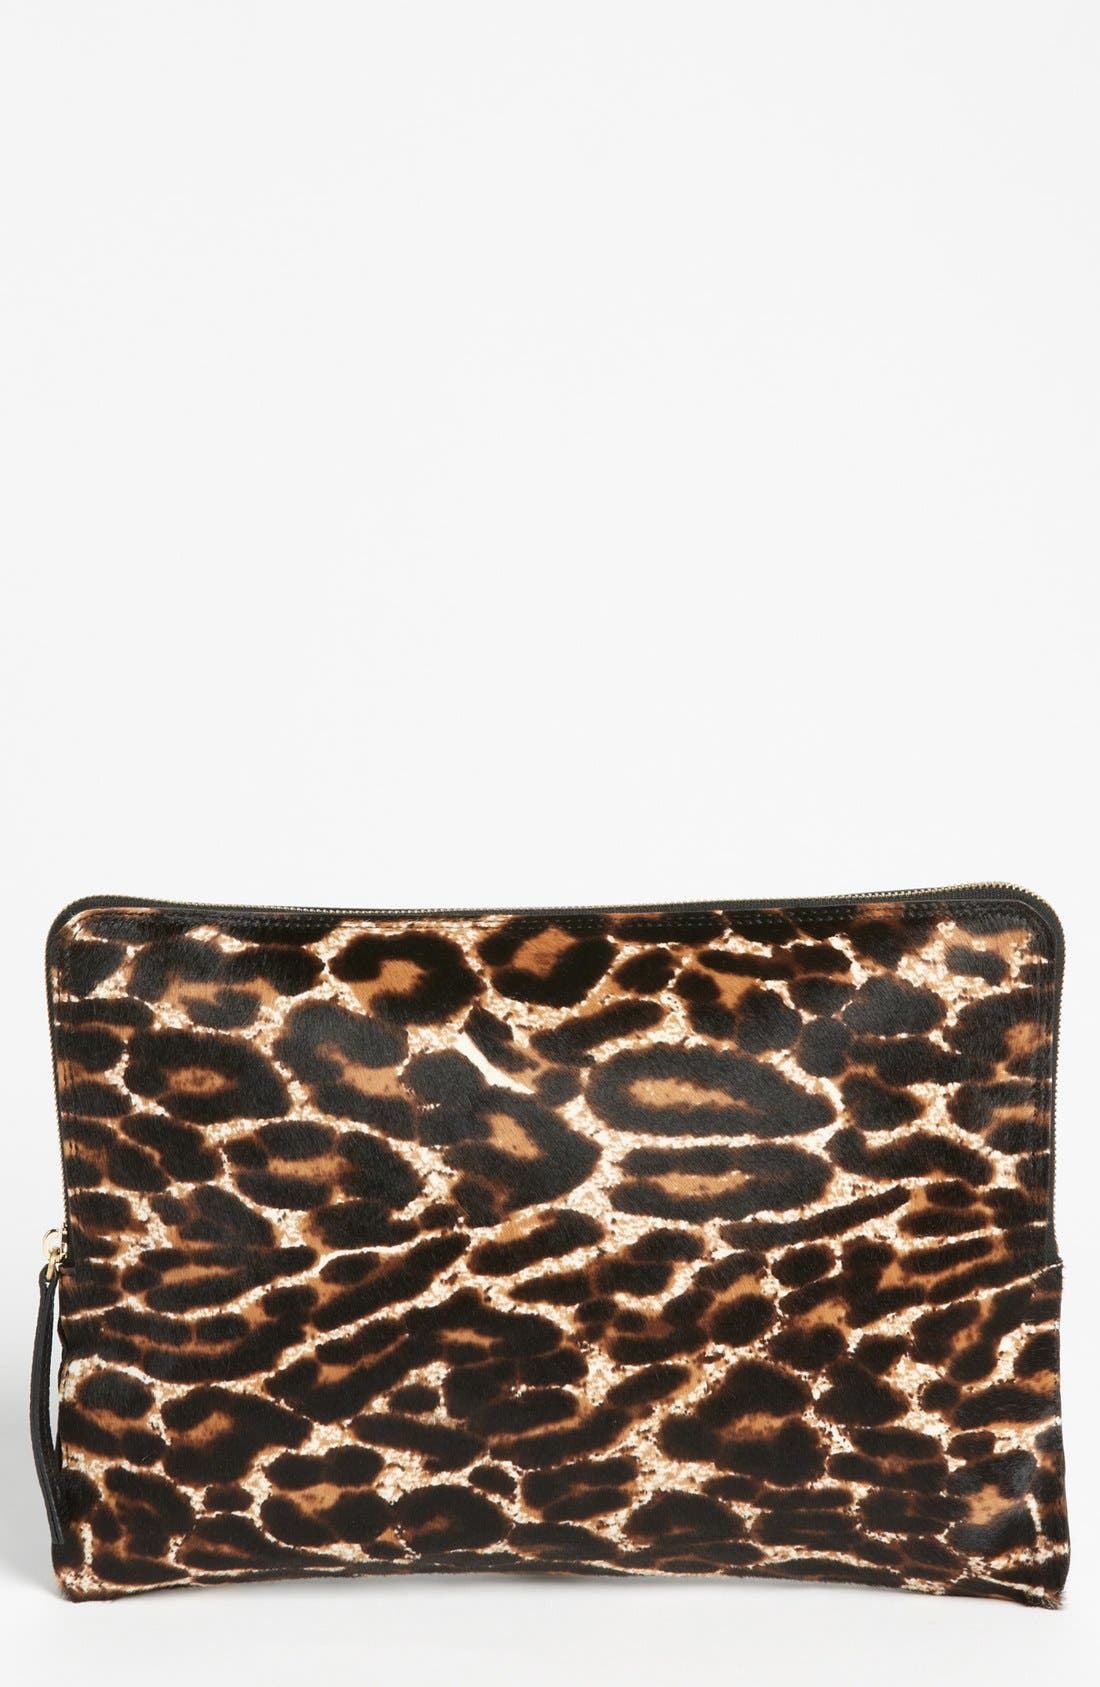 Alternate Image 1 Selected - Lanvin 'Oversize' Leopard Print Calf Hair Clutch